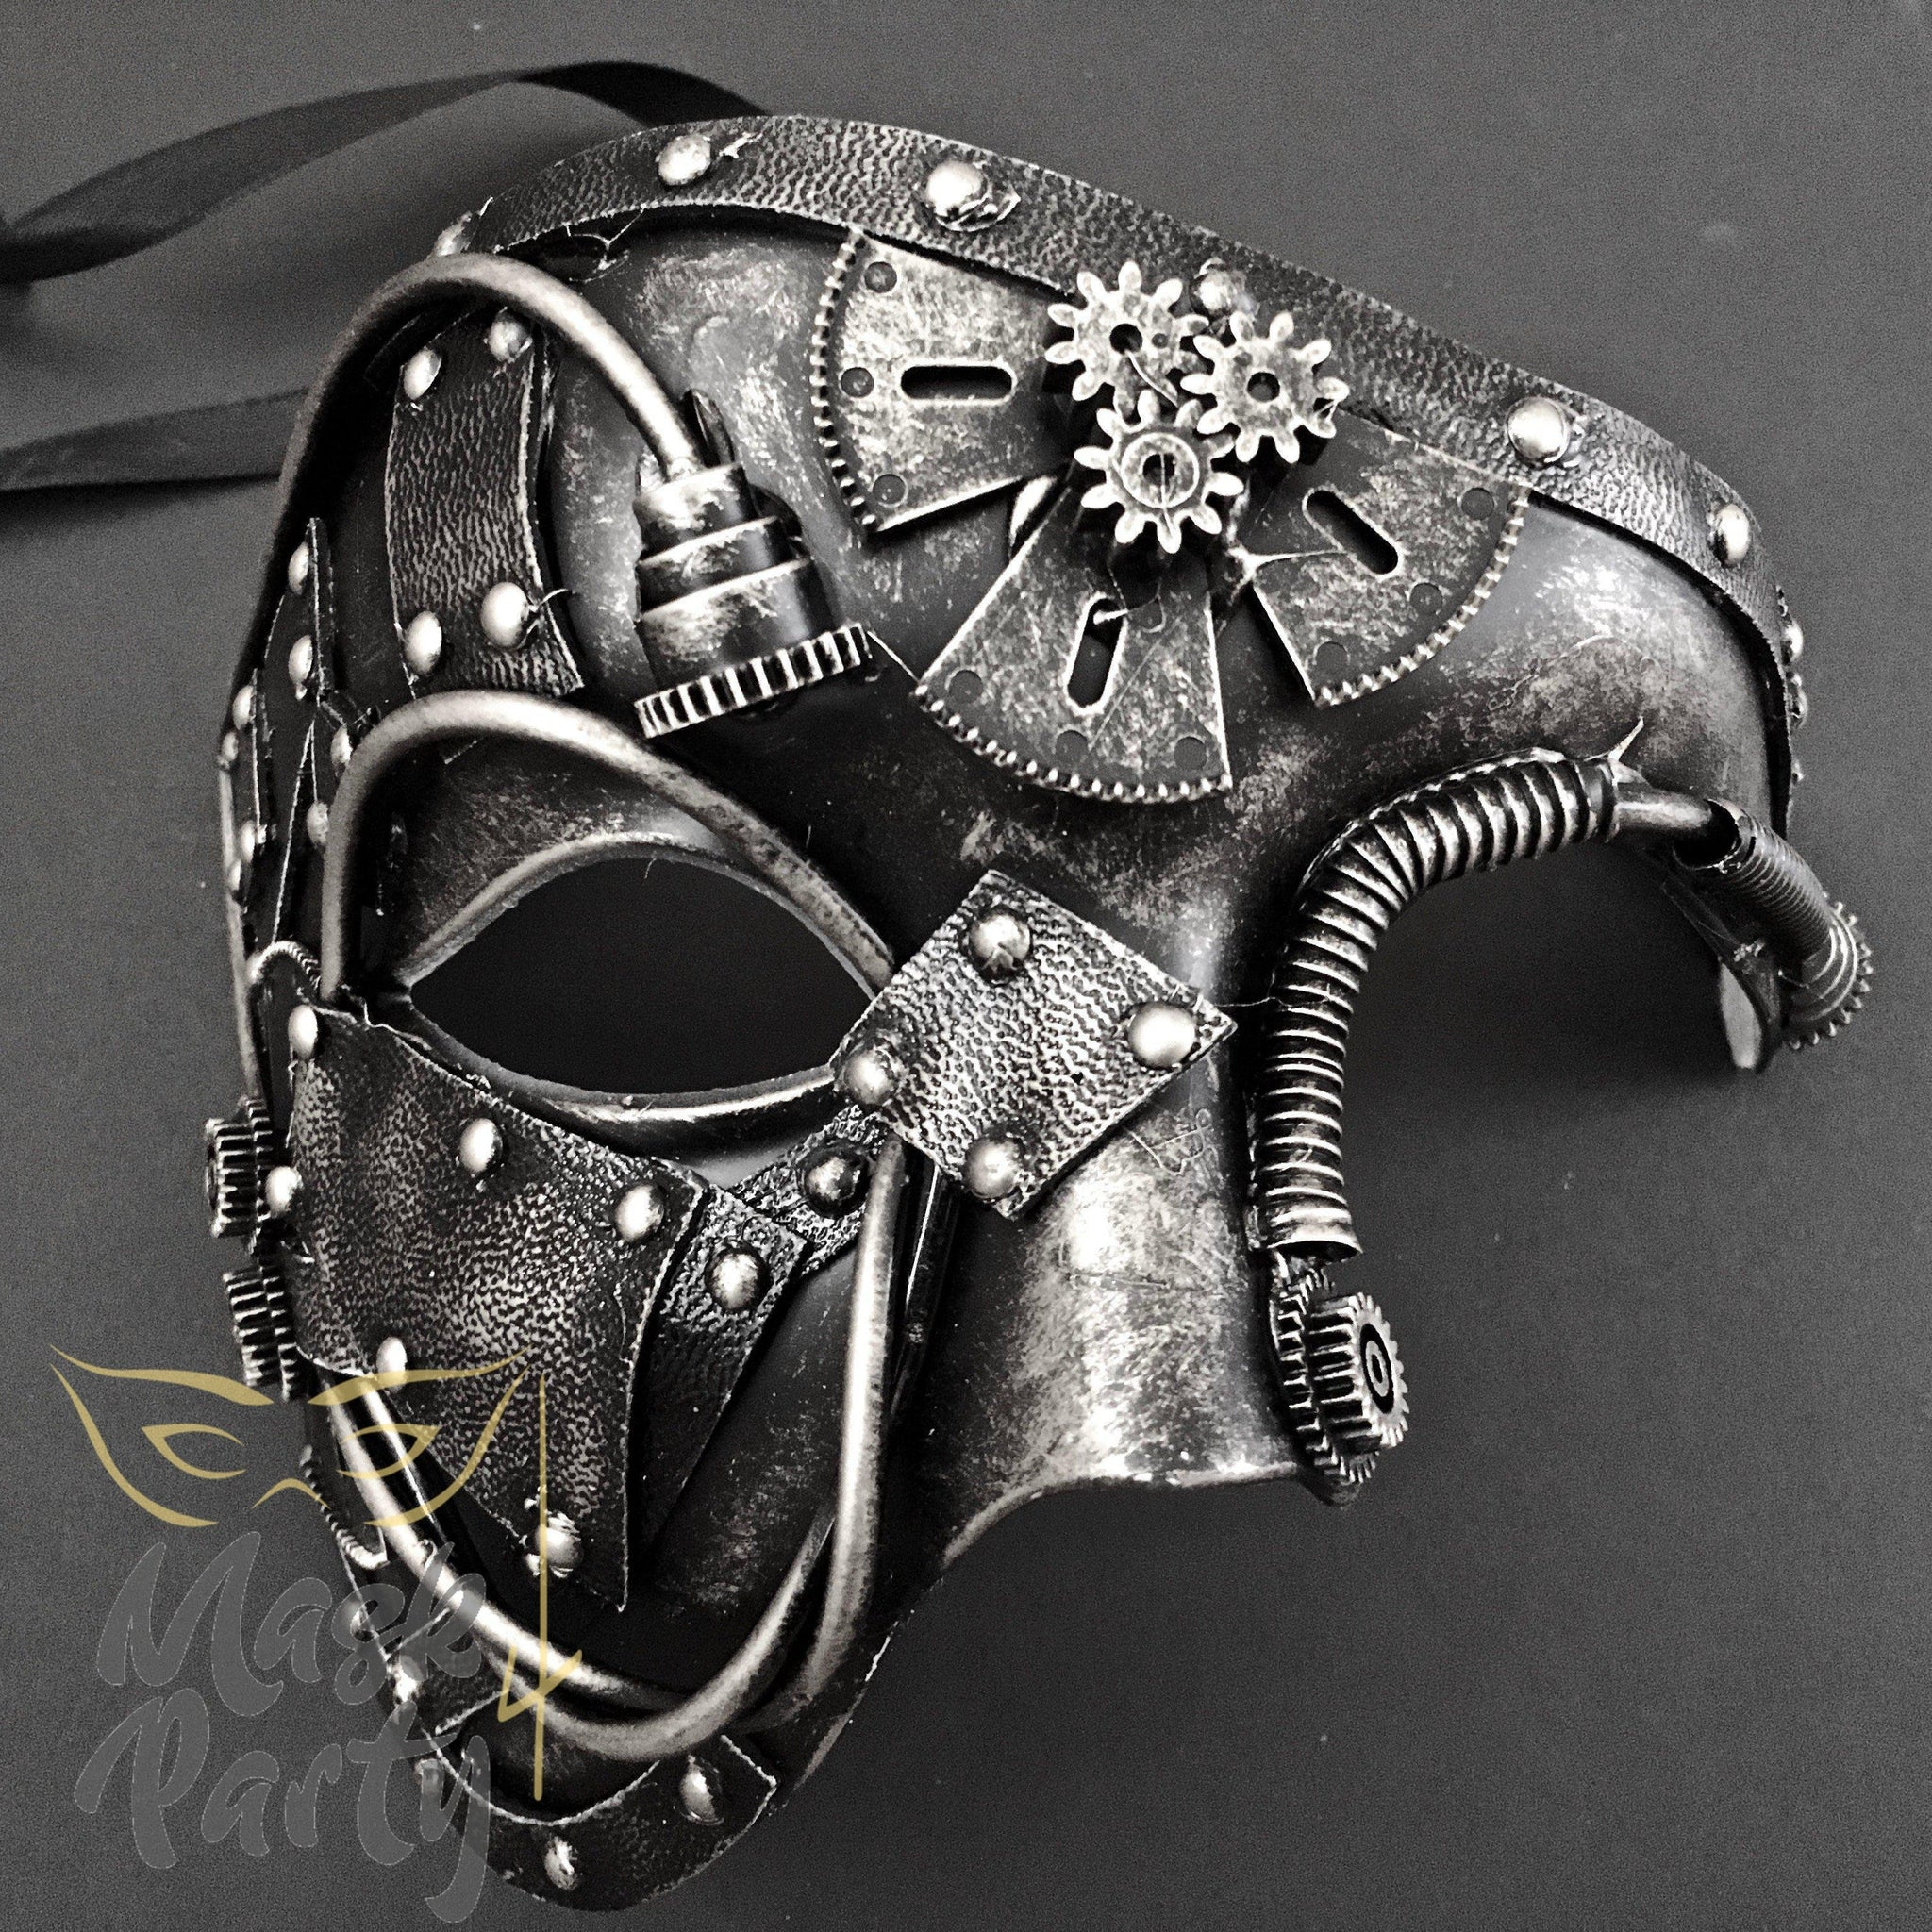 Steampunk Mask - Gear & Tube - Black/Silver - Mask4Party